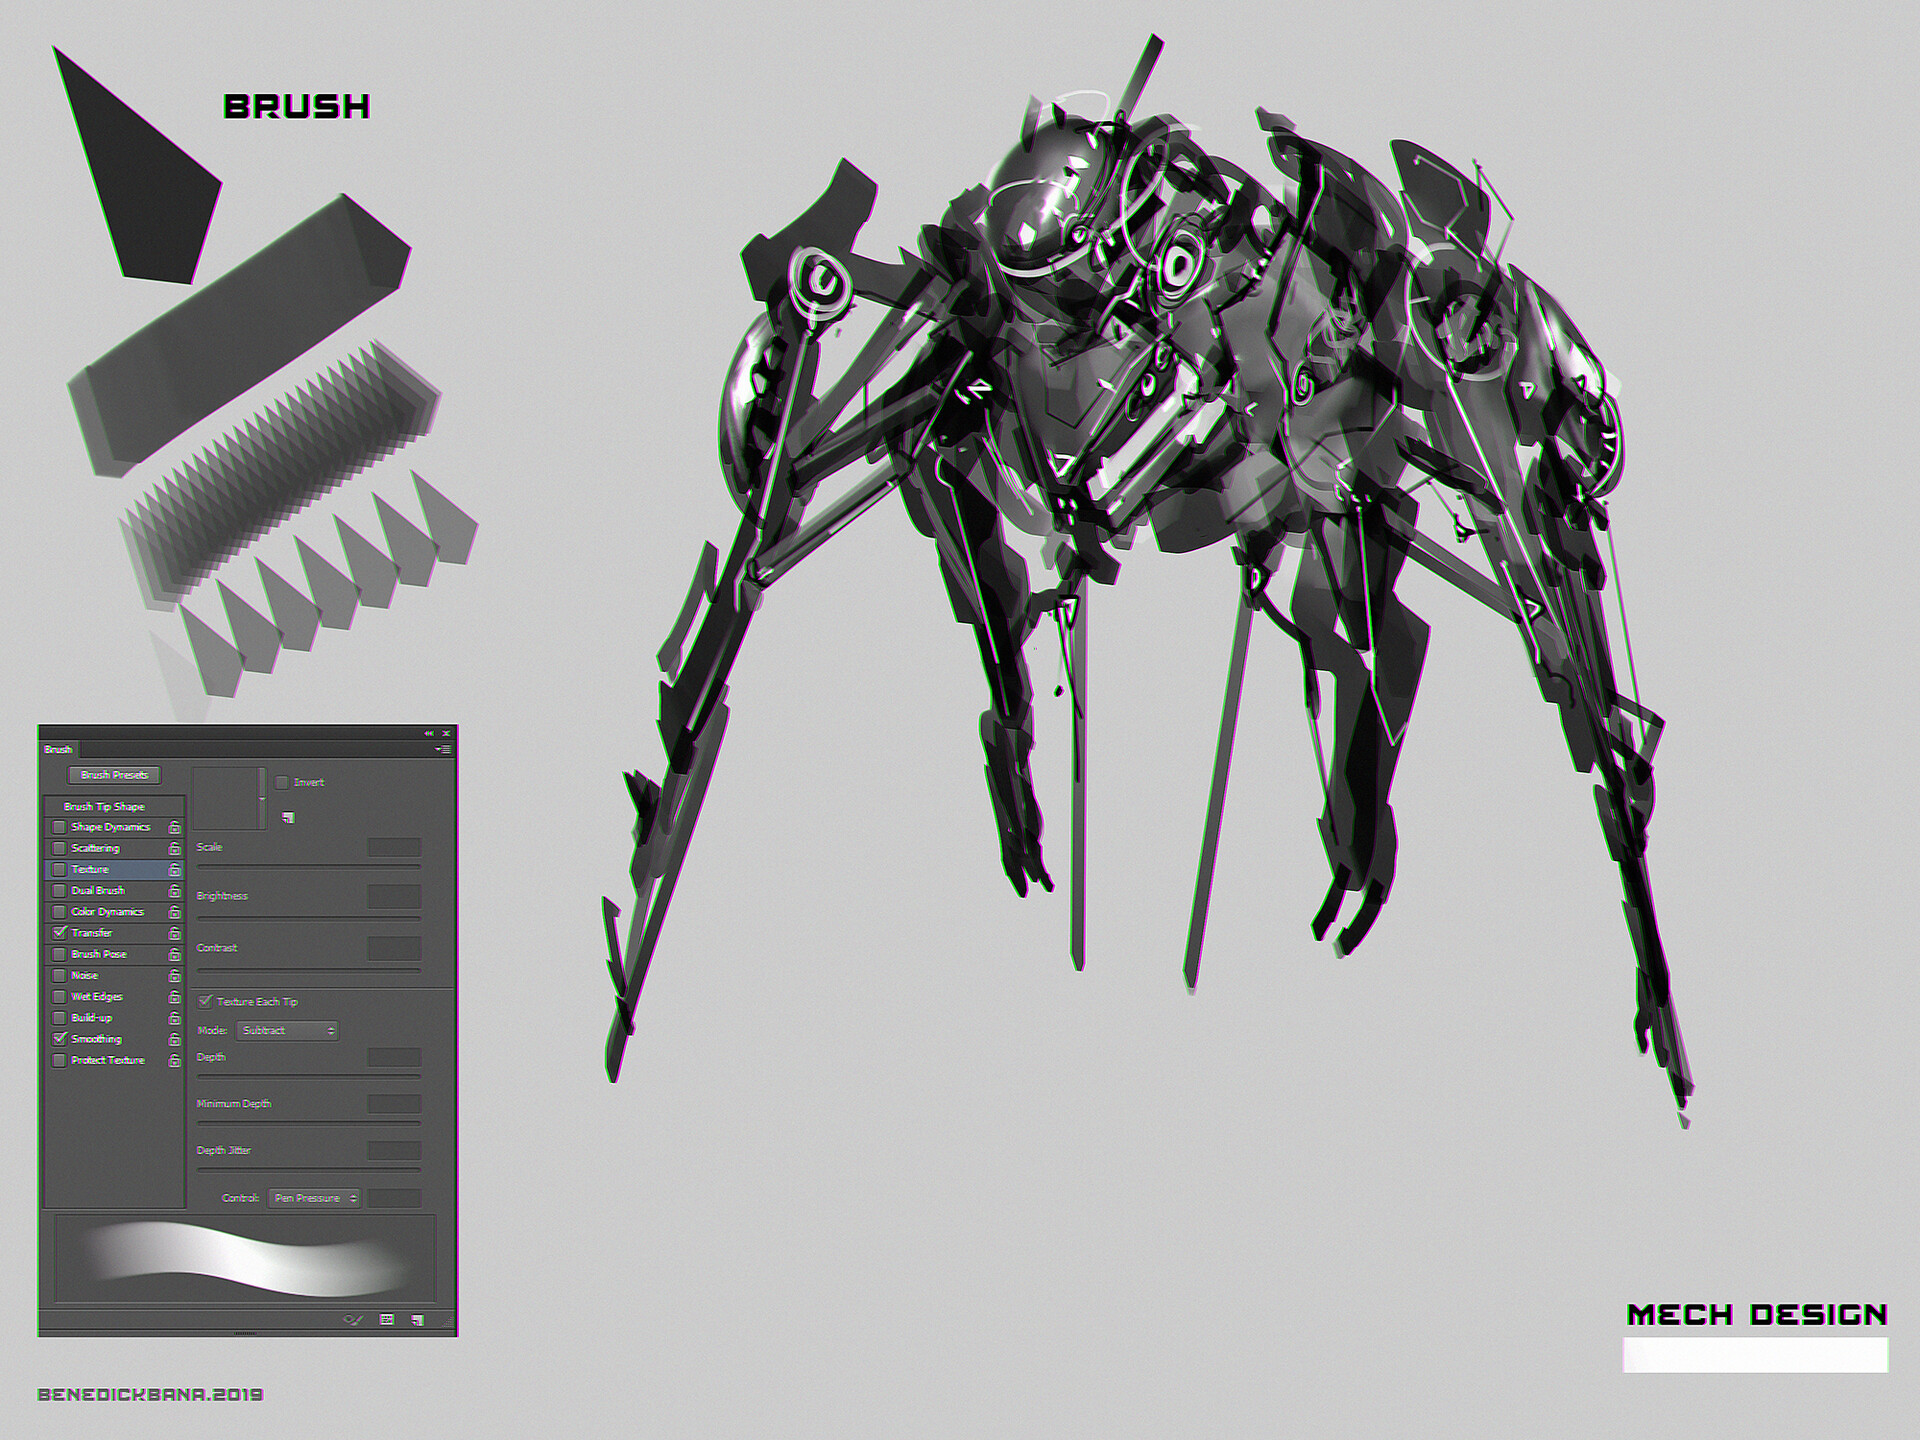 Mech Design using CustomBrush